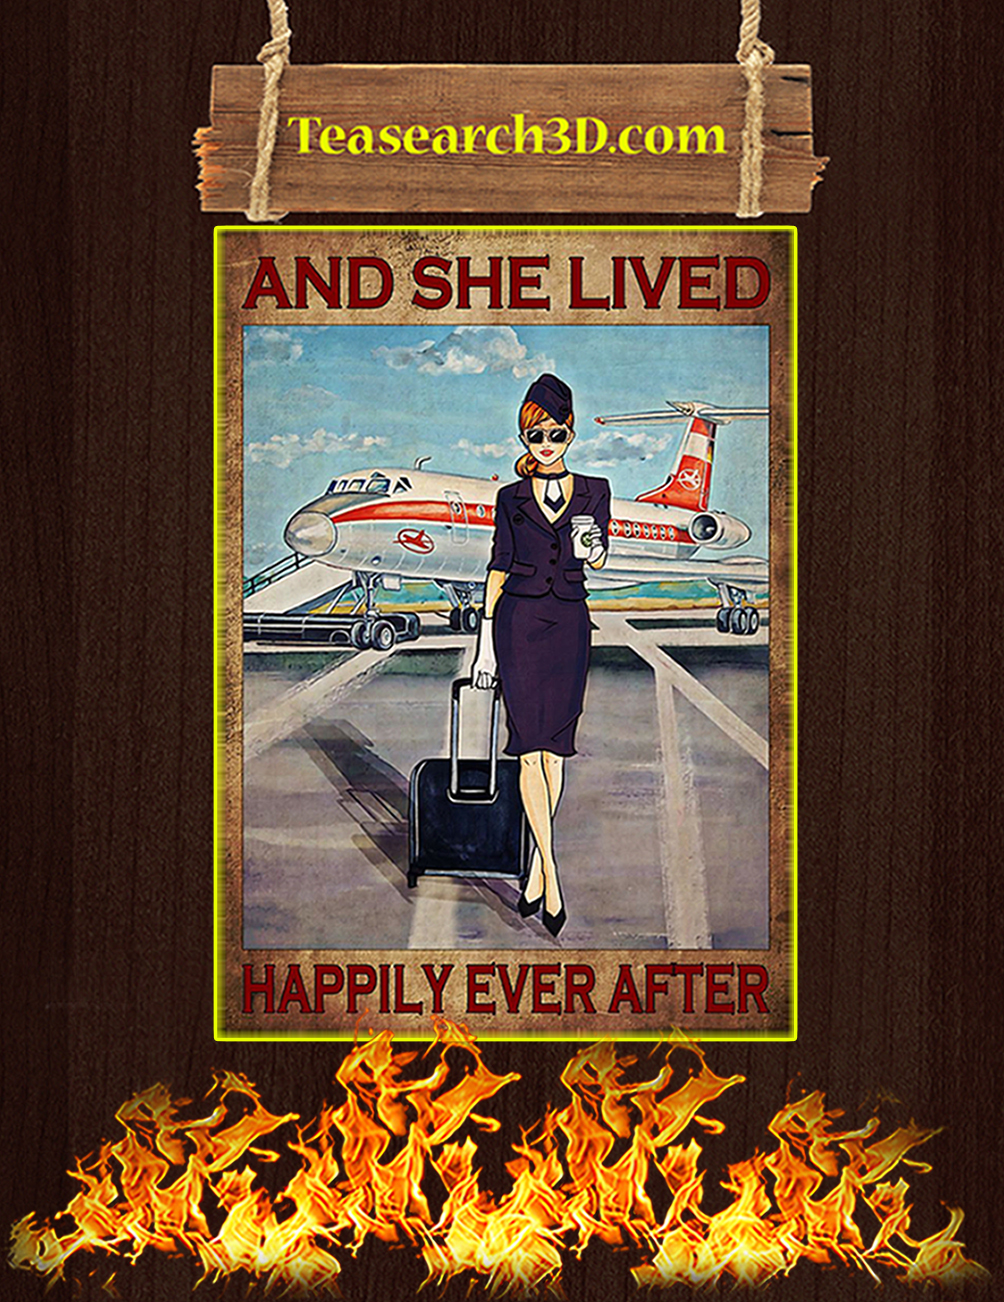 Flight attendant and she lived happily ever after black poster 2